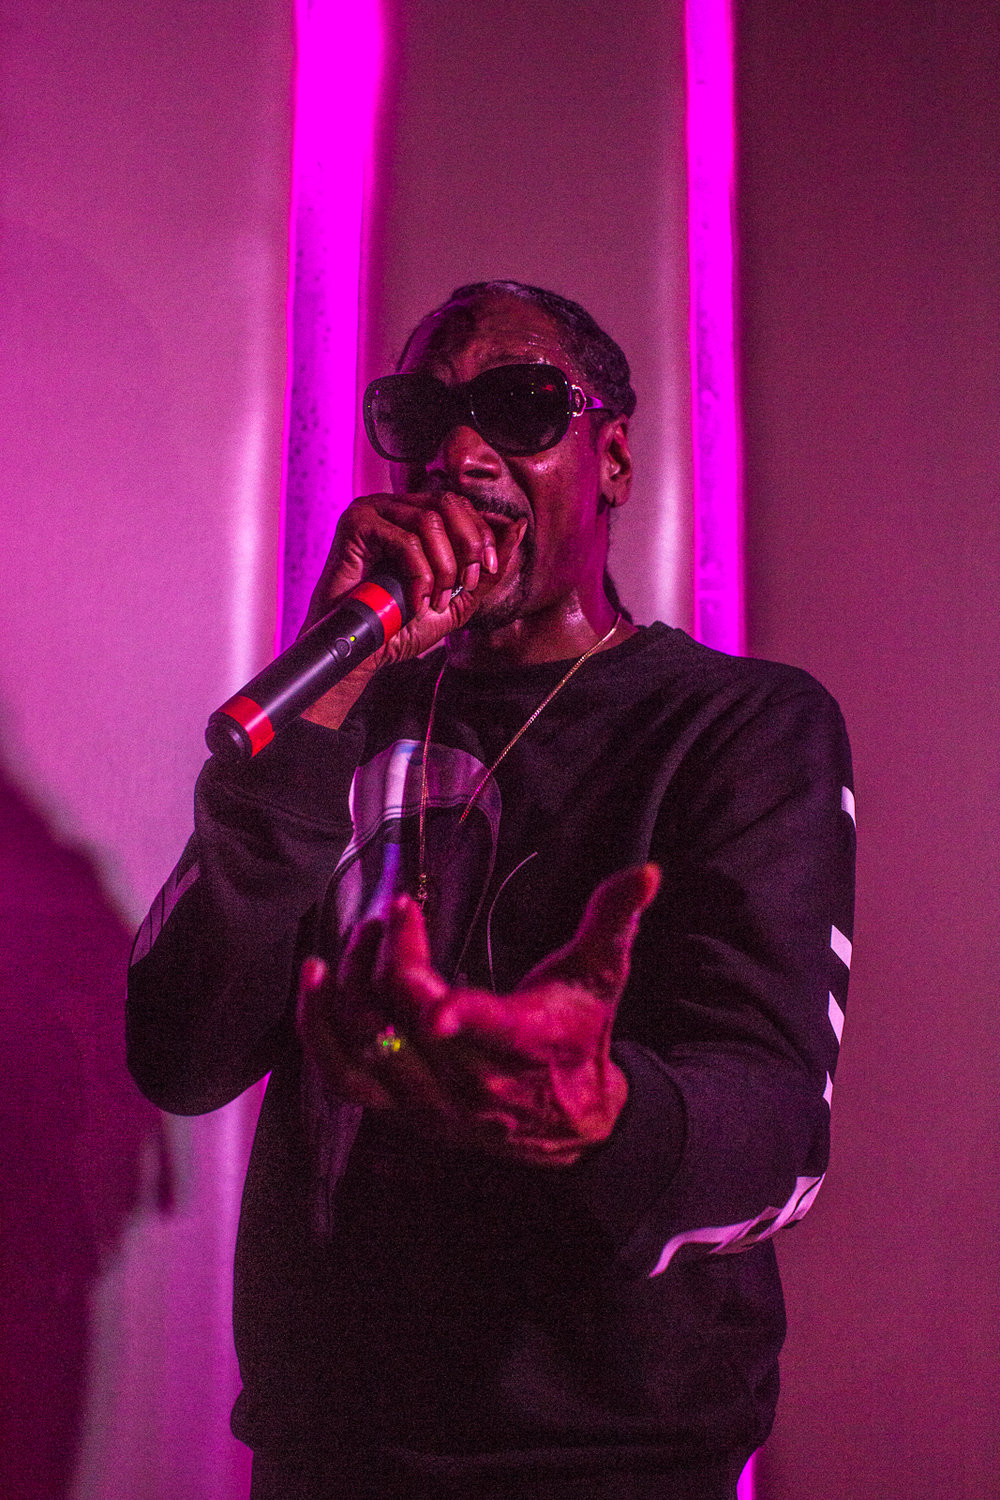 Snoop Dogg performing during a private show at Bootsy Bellows in Aspen.